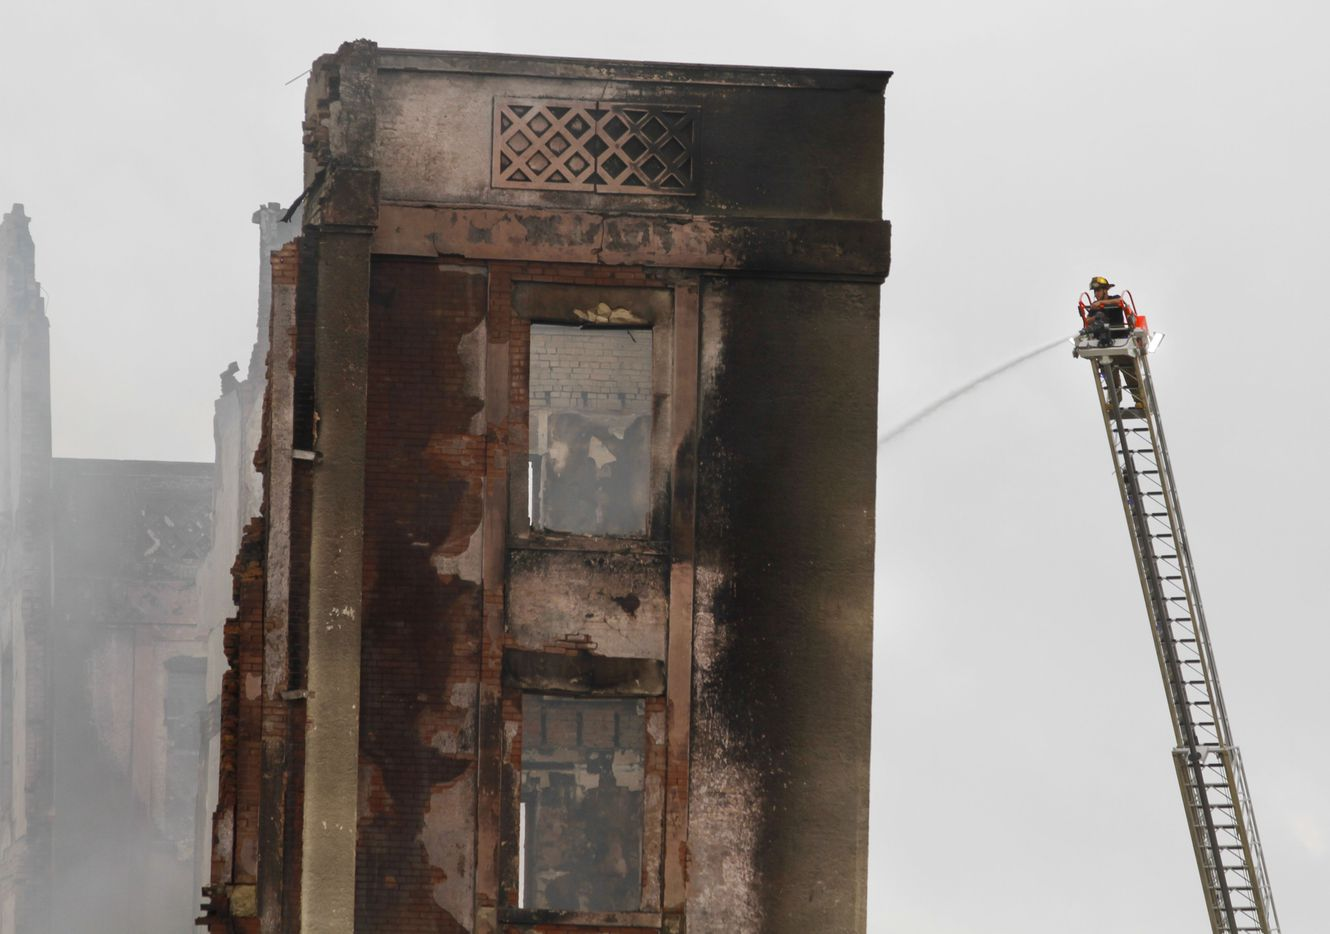 A Dallas Fire-Rescue team member sprays water from atop a ladder on the Ambassador Hotel after the overnight fire.